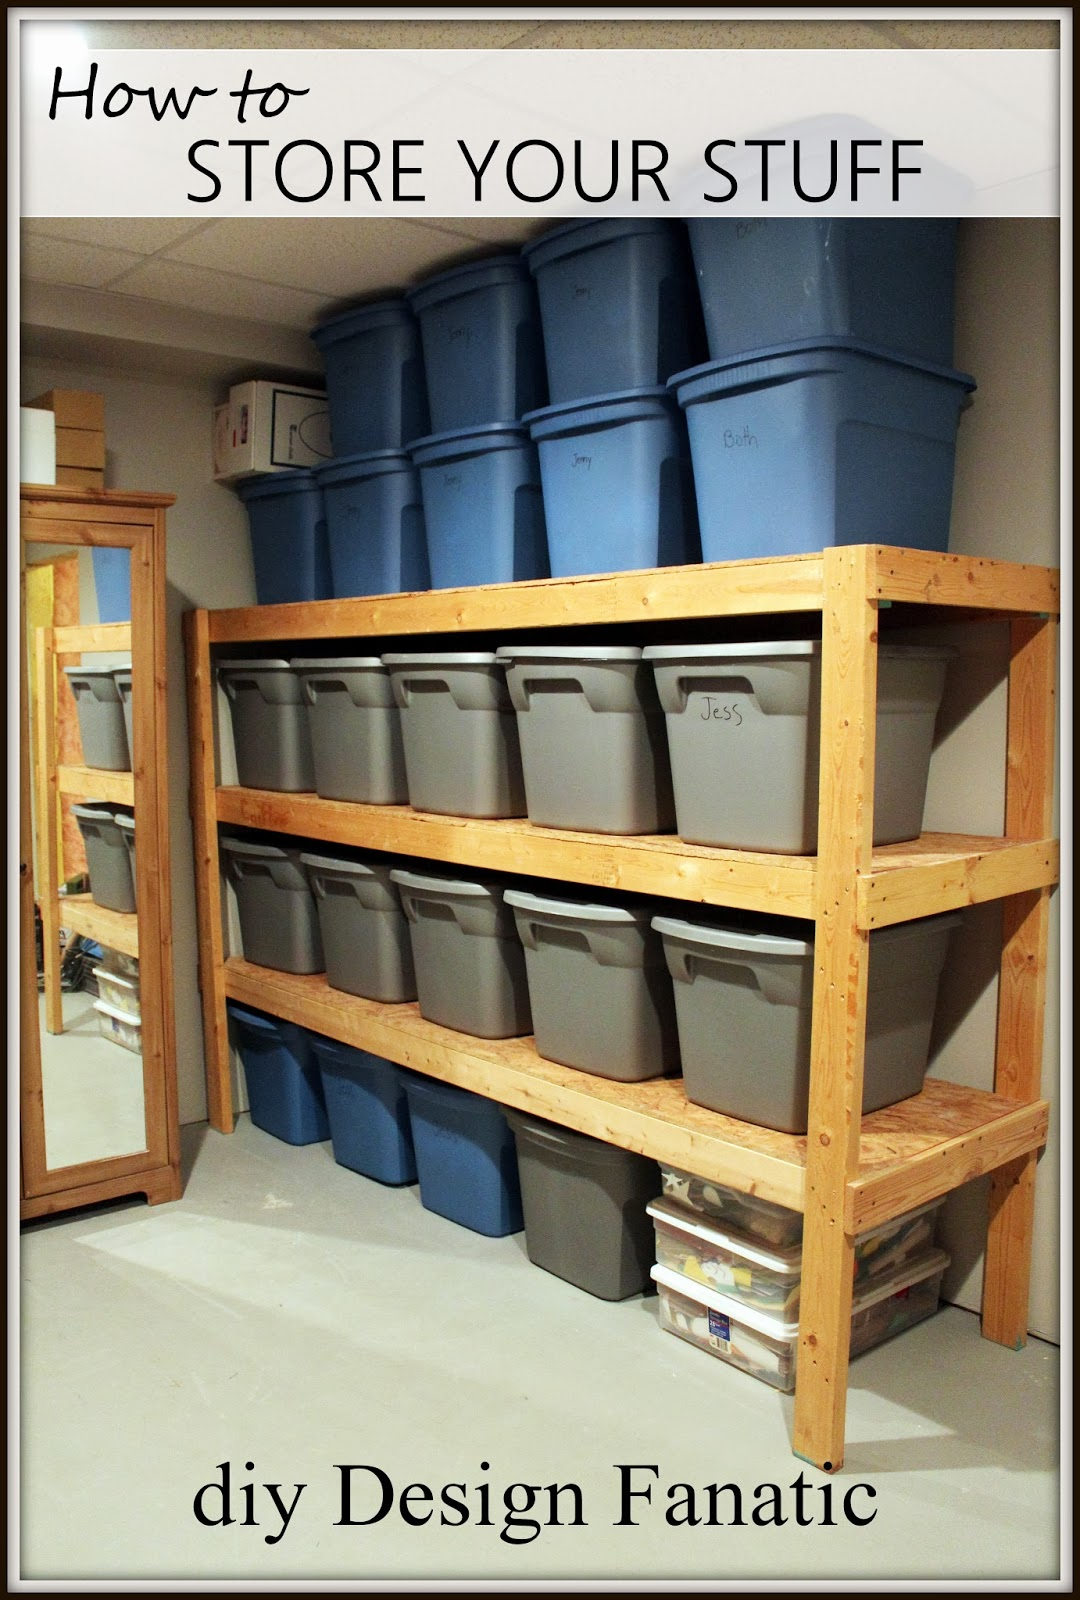 storage diydesignfanatic.com storage shelves diy storage shelves basement storage : basement shelves diy  - Aeropaca.Org